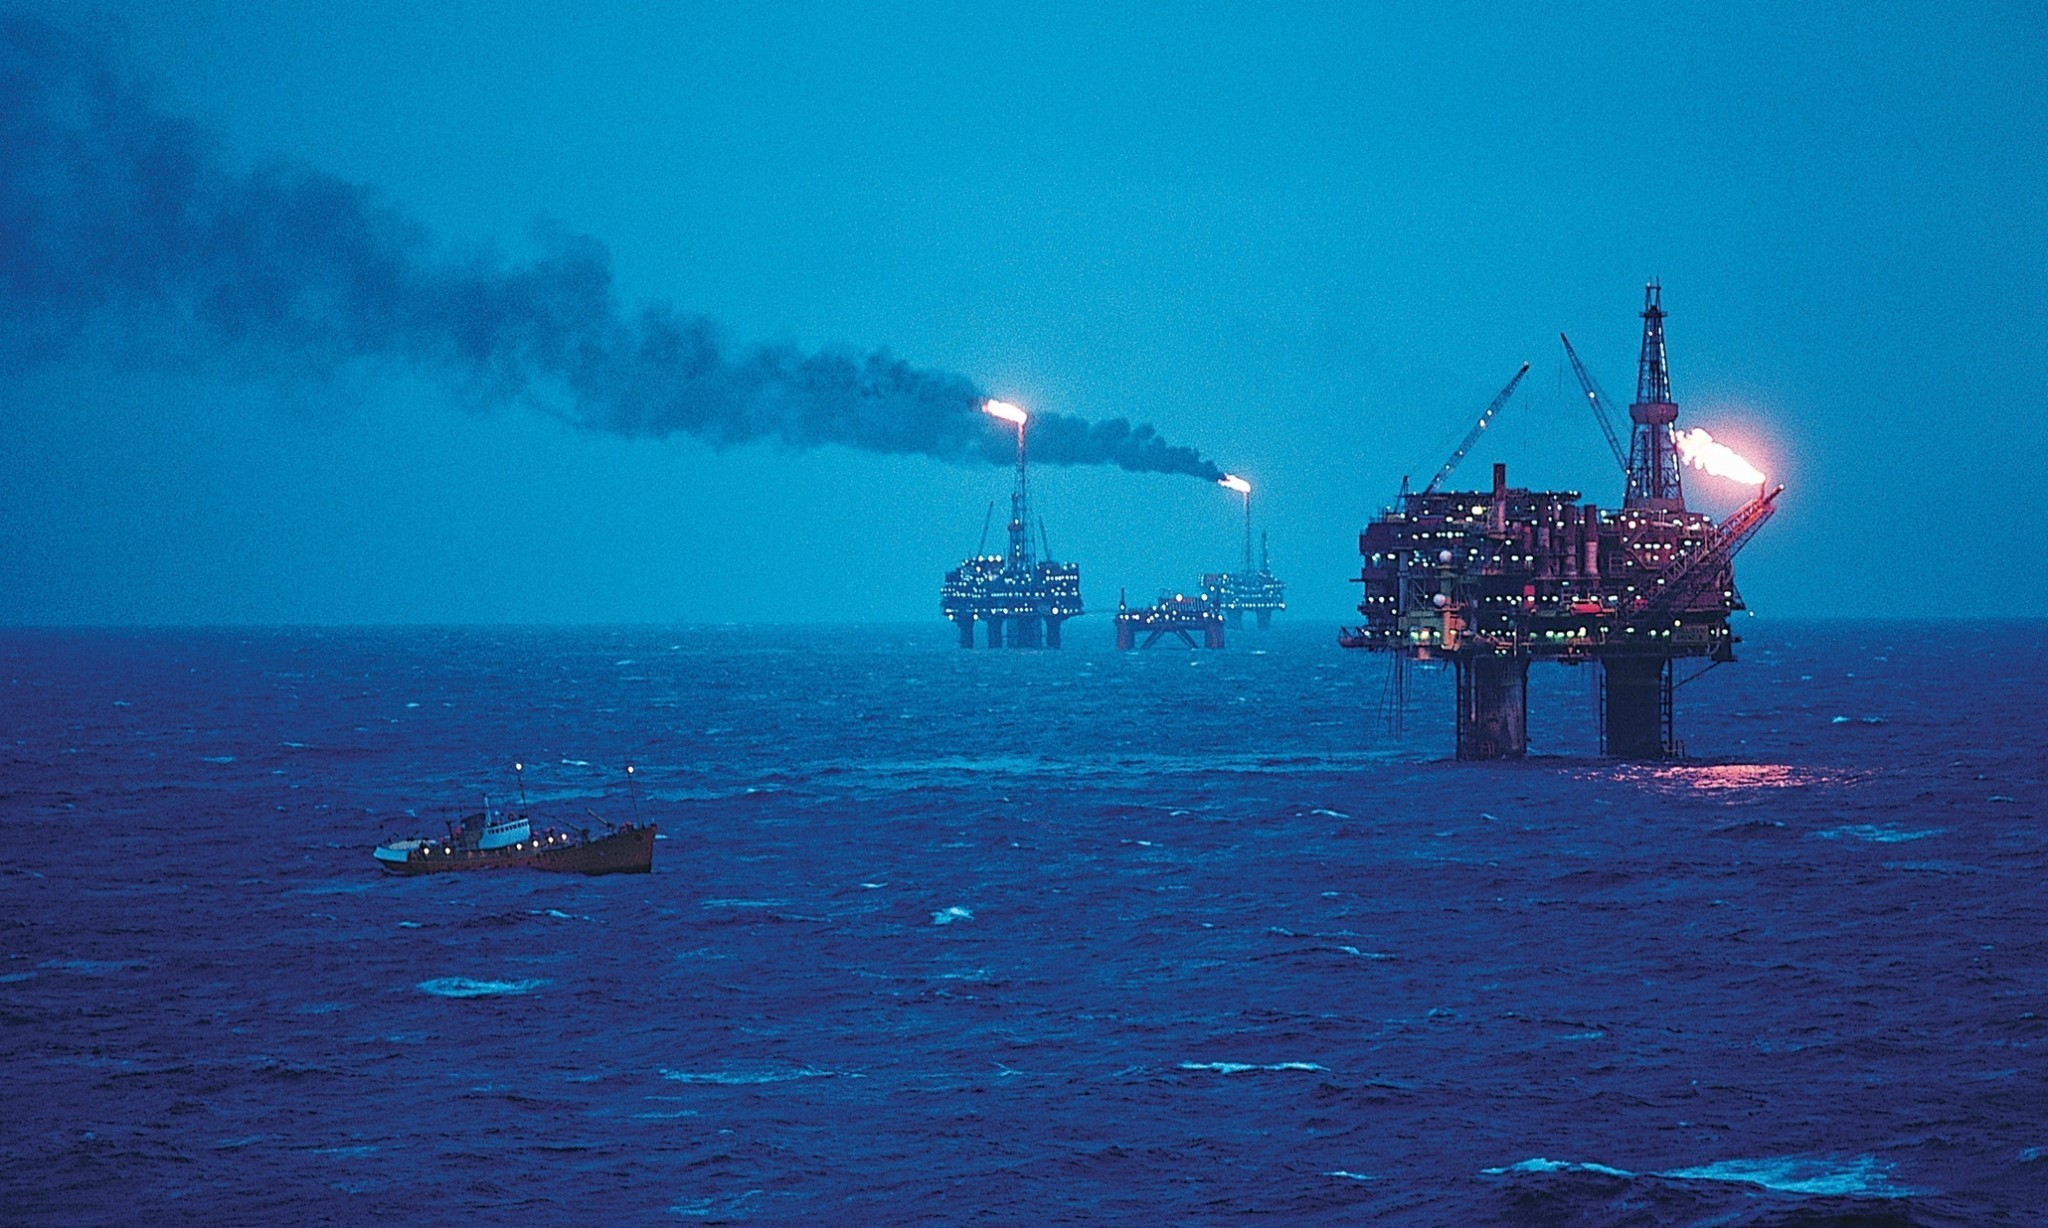 Death knell for the North Sea as Shell pulls out of Brent field